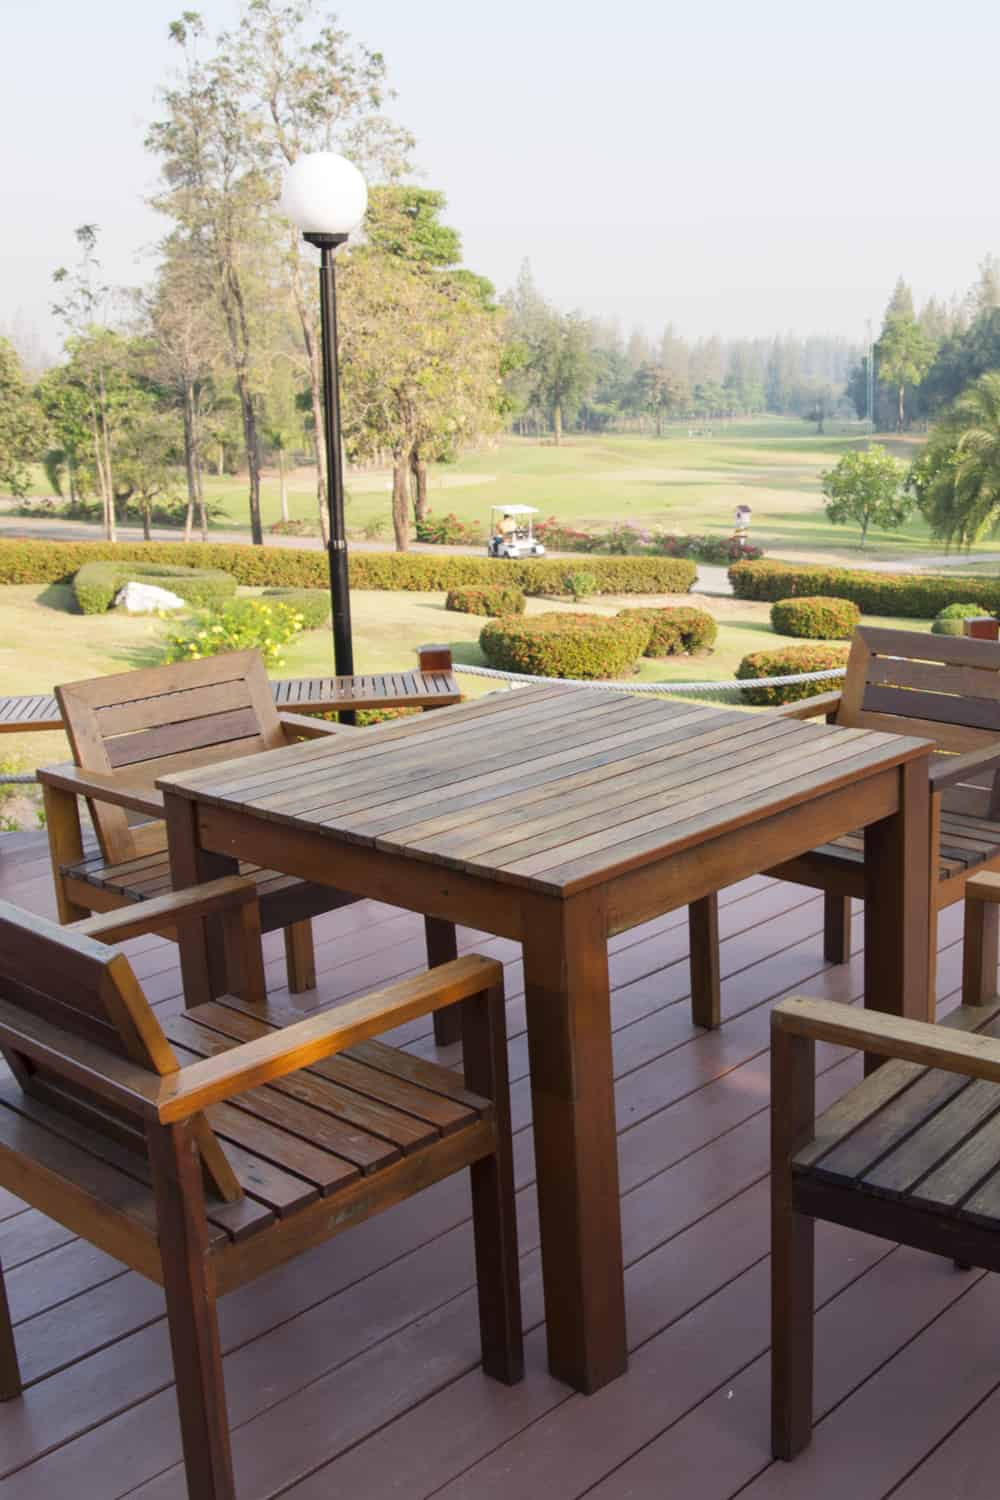 17 homemade outdoor dining table plans